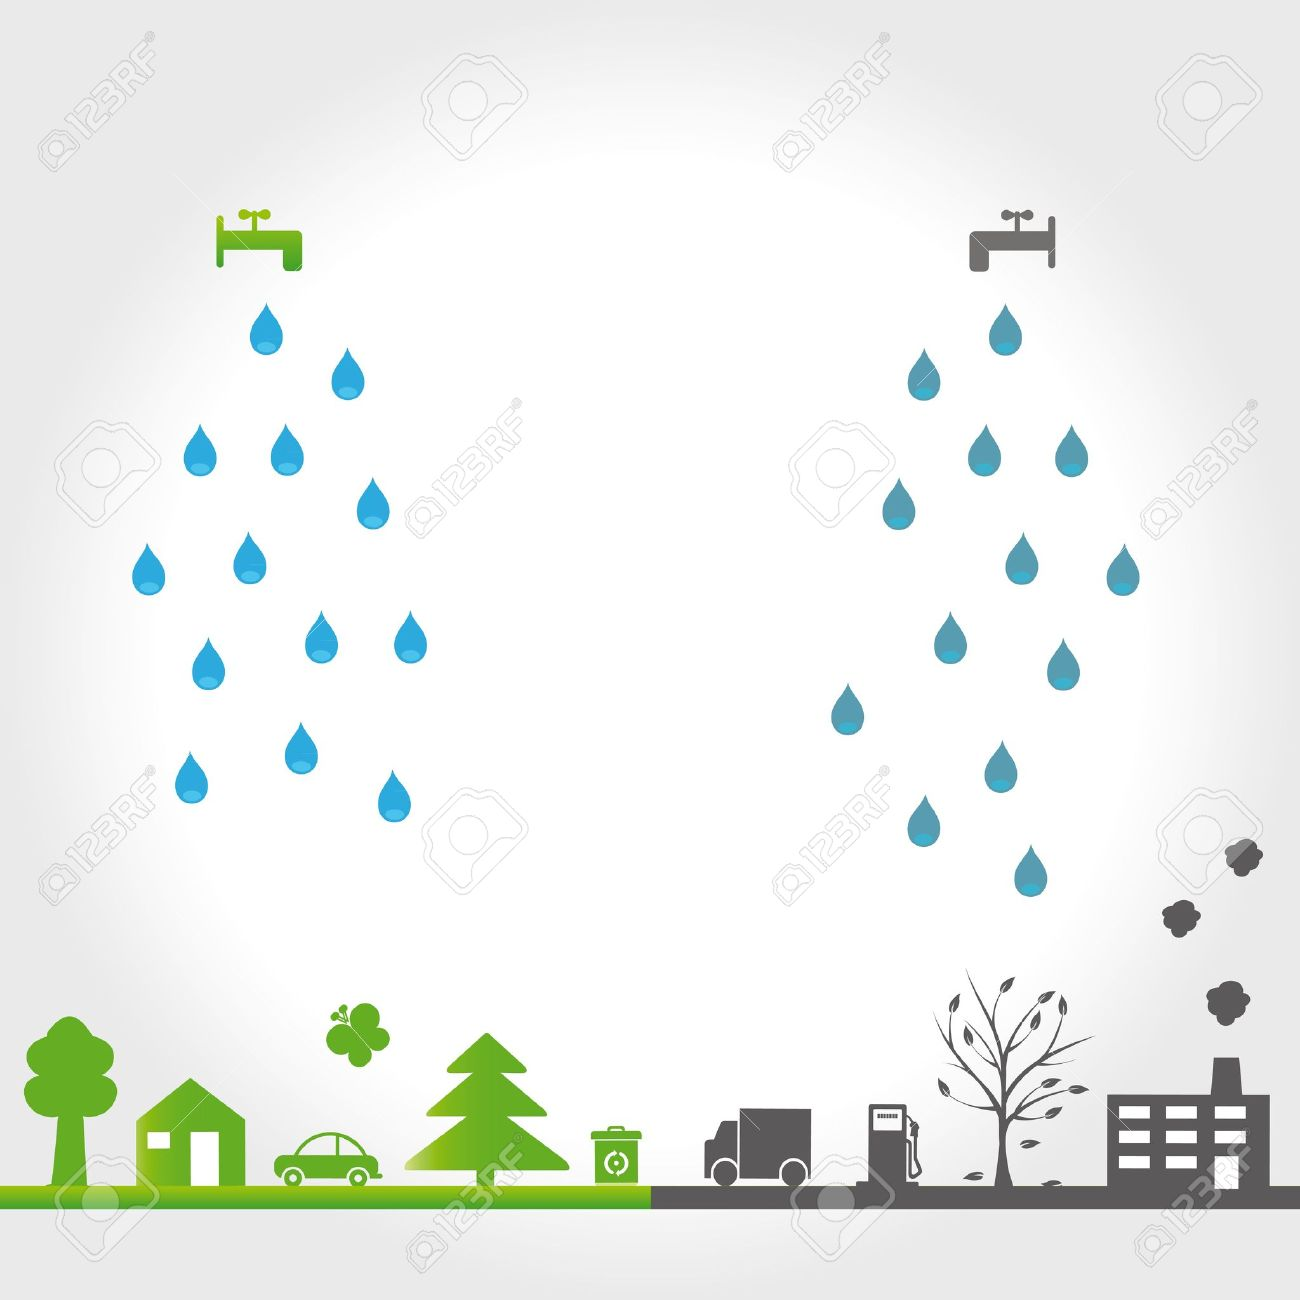 Protect the earth environment symbols on clean or dirty earth protect the earth environment symbols on clean or dirty earth stock vector 12293068 biocorpaavc Choice Image